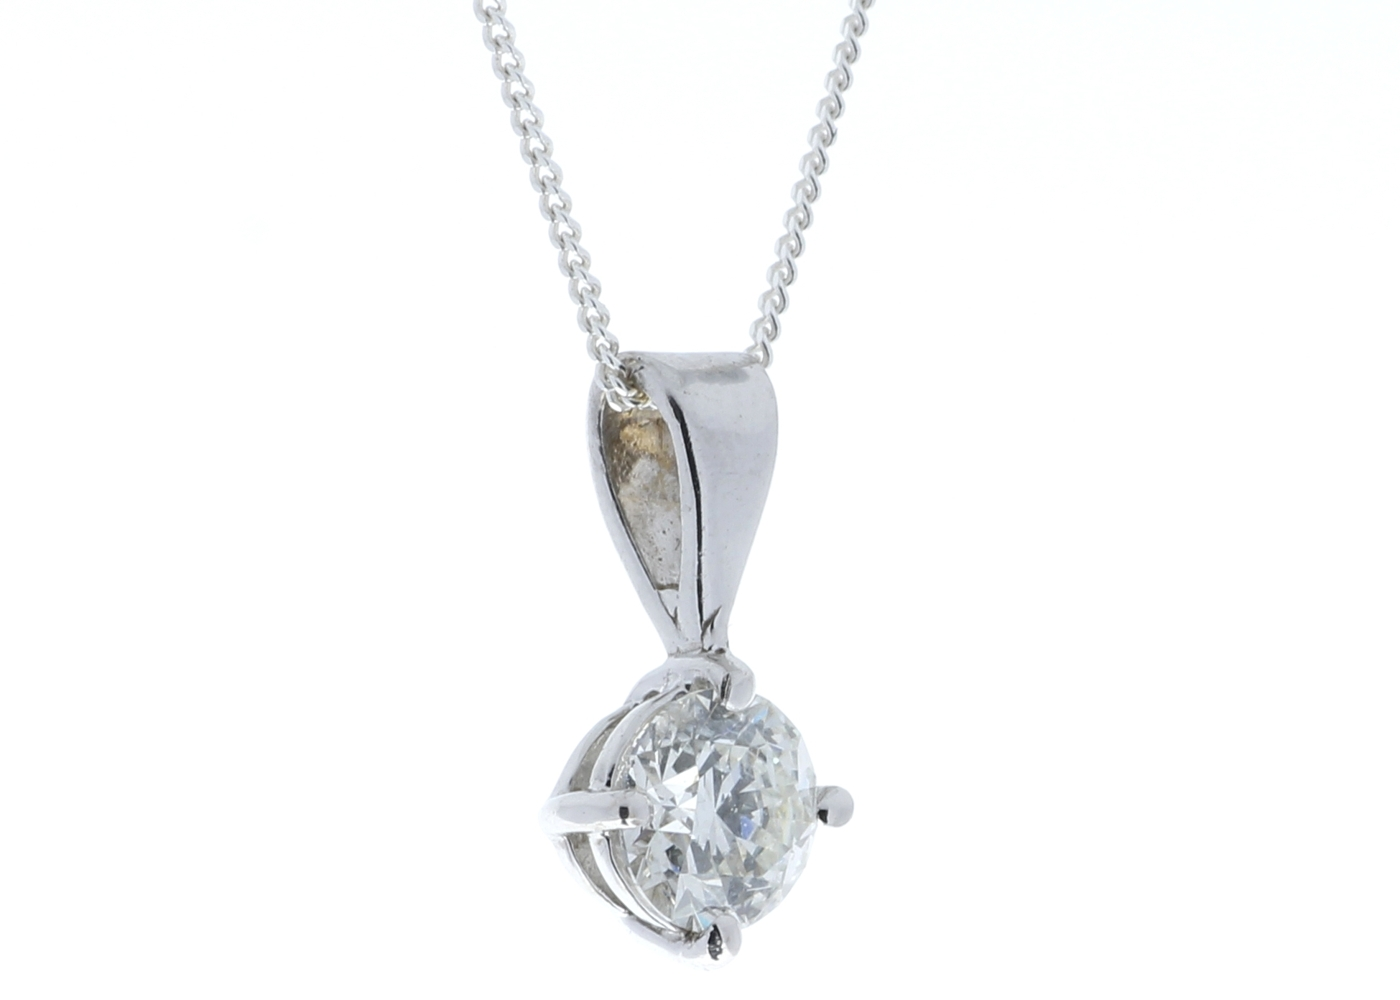 Lot 34 - 18ct White Gold Wire Set Diamond Pendant 0.70 Carats